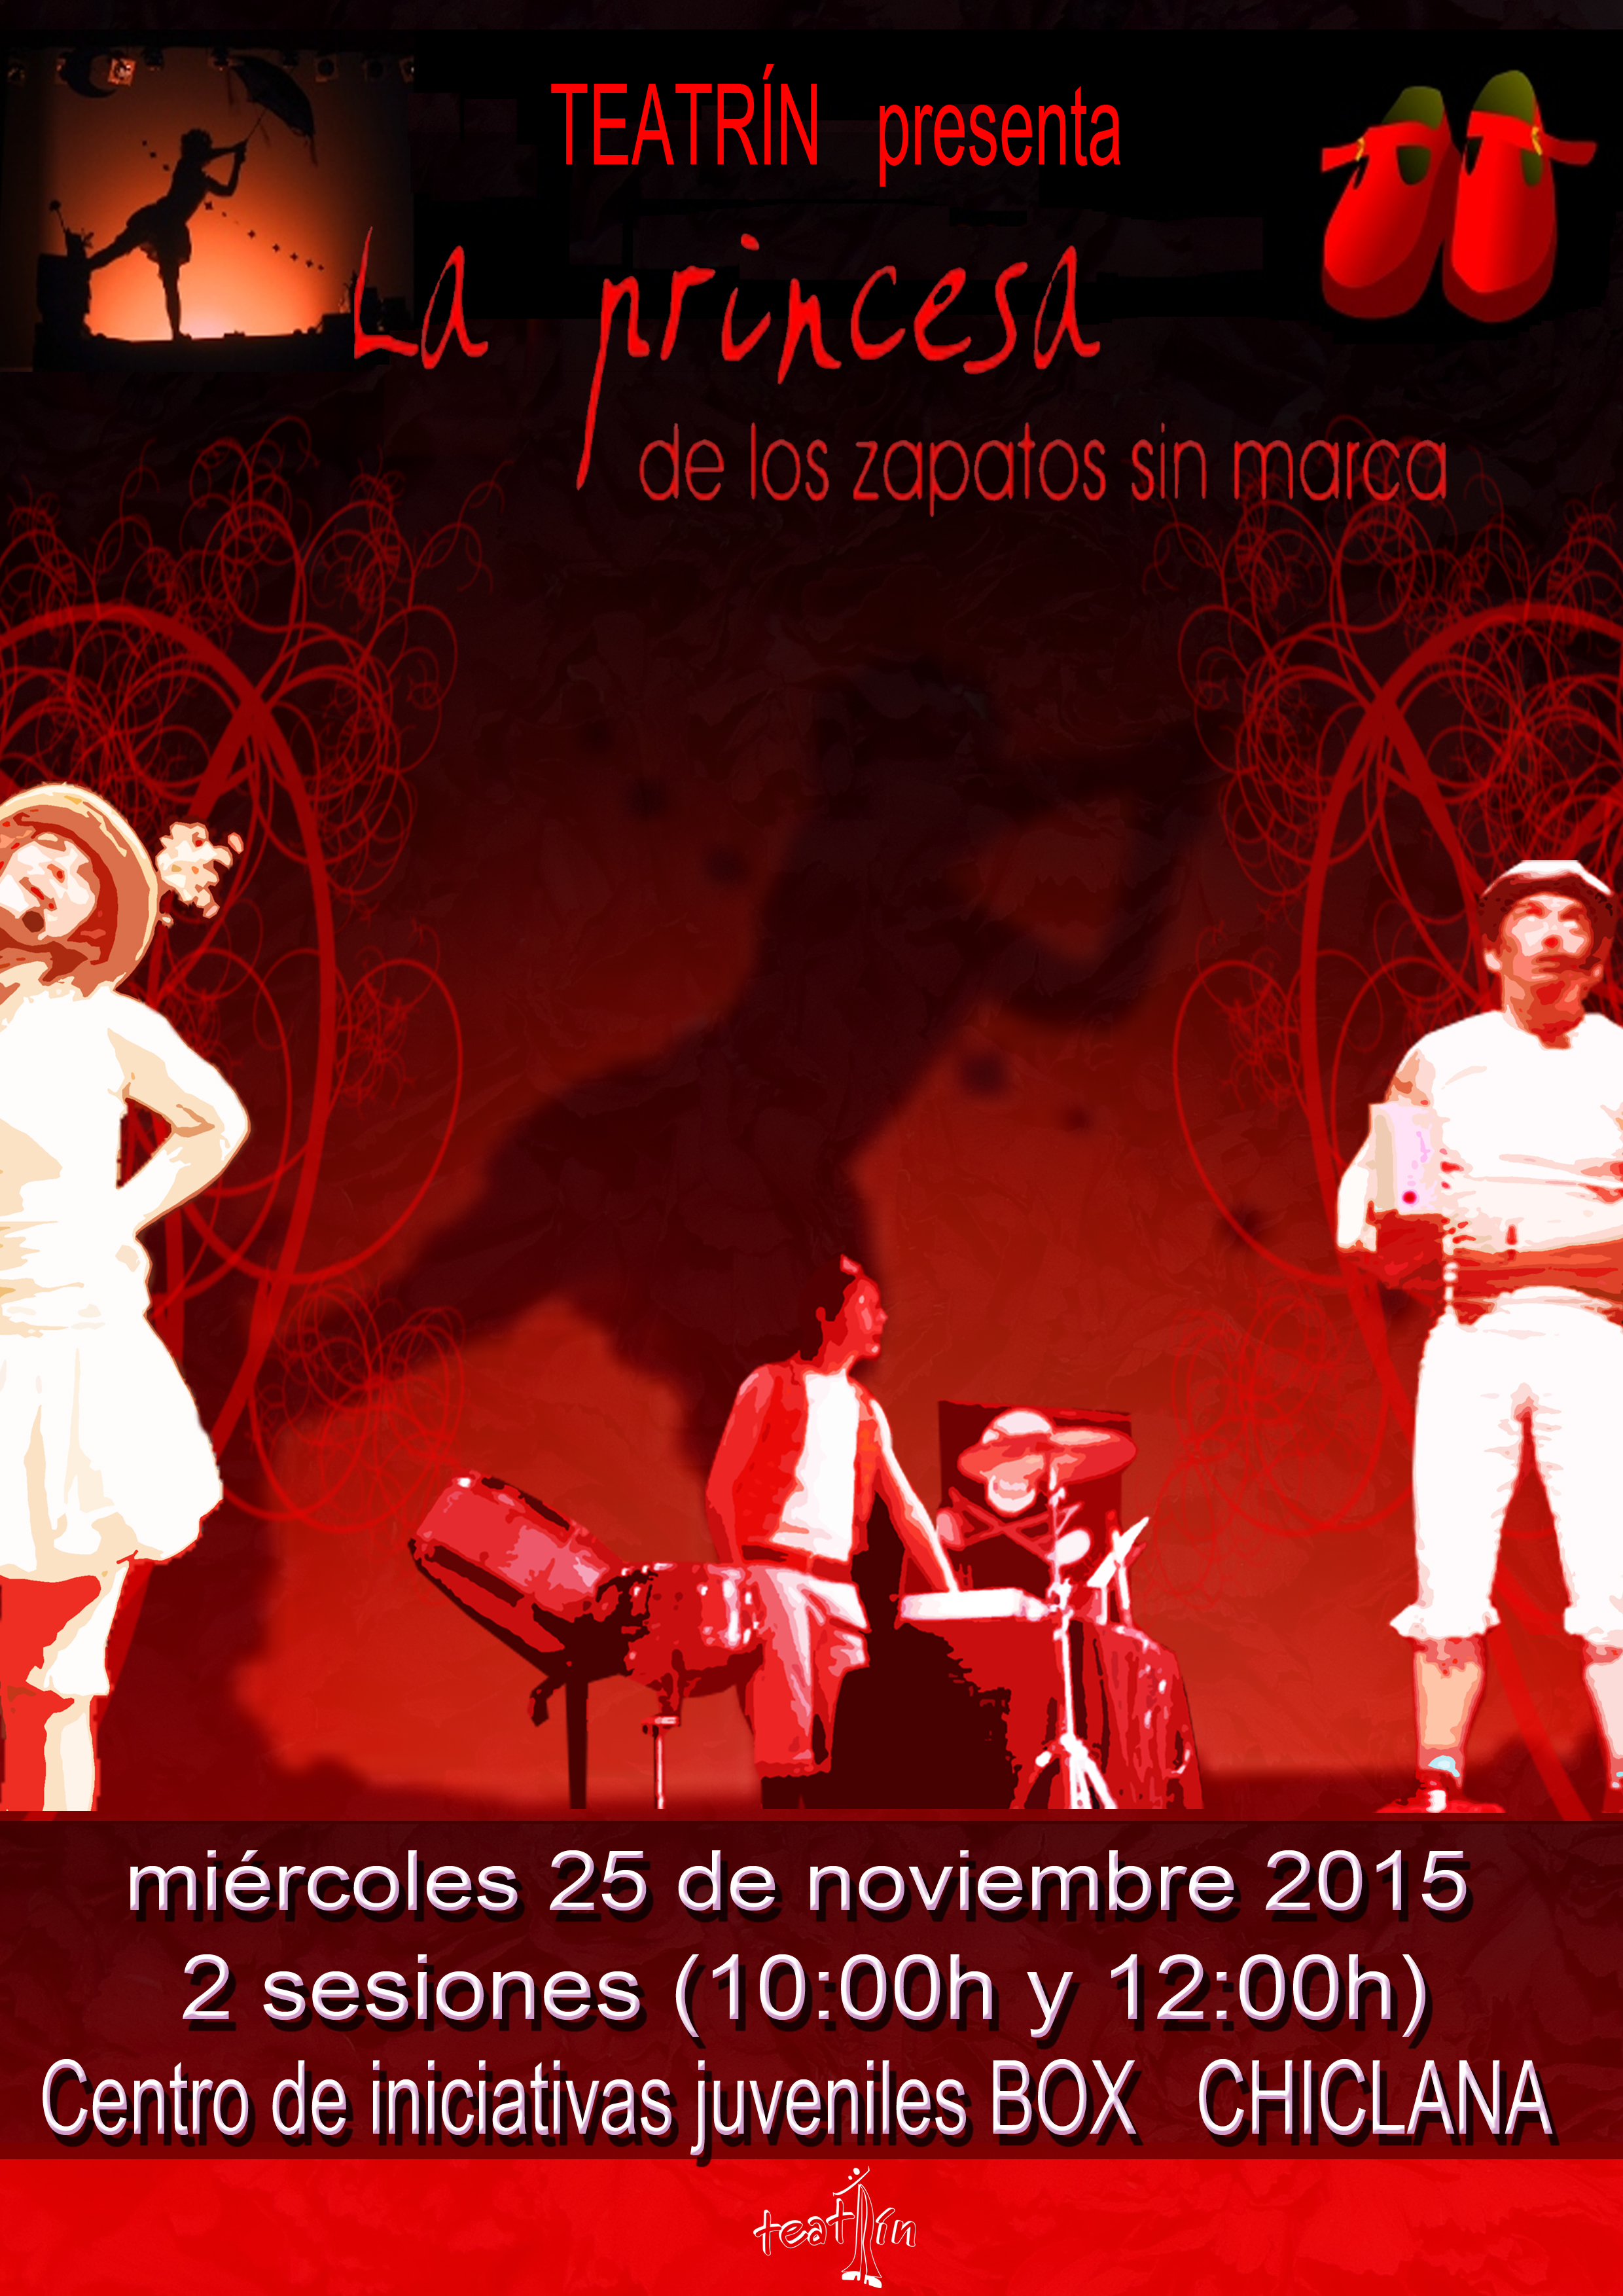 LPDLZSM_CHICLANA_NOV_2015